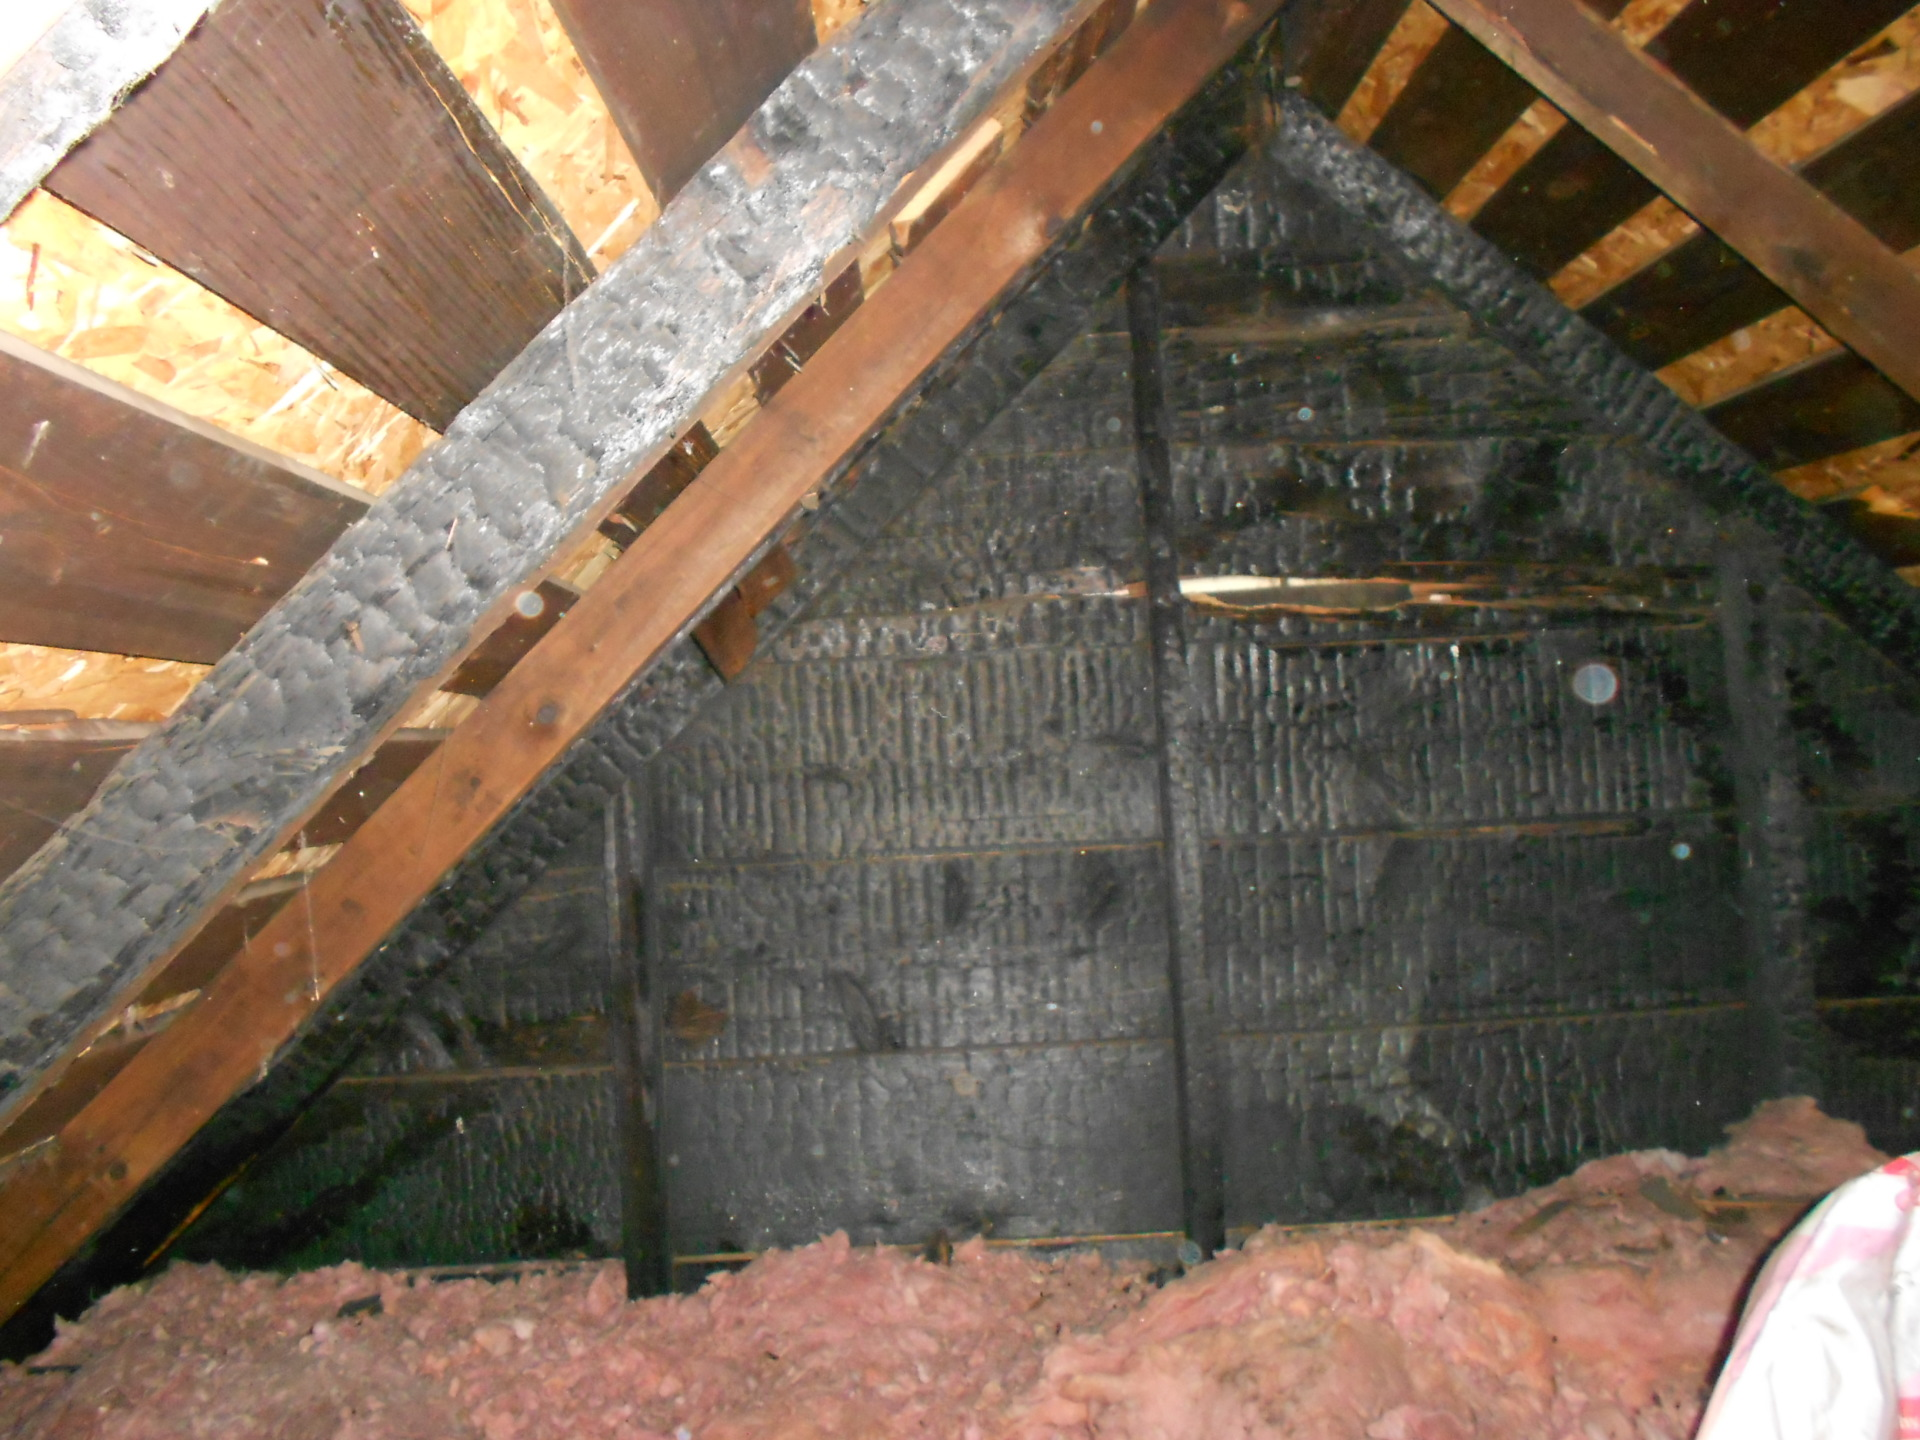 An attic fire caused burnt framing members.